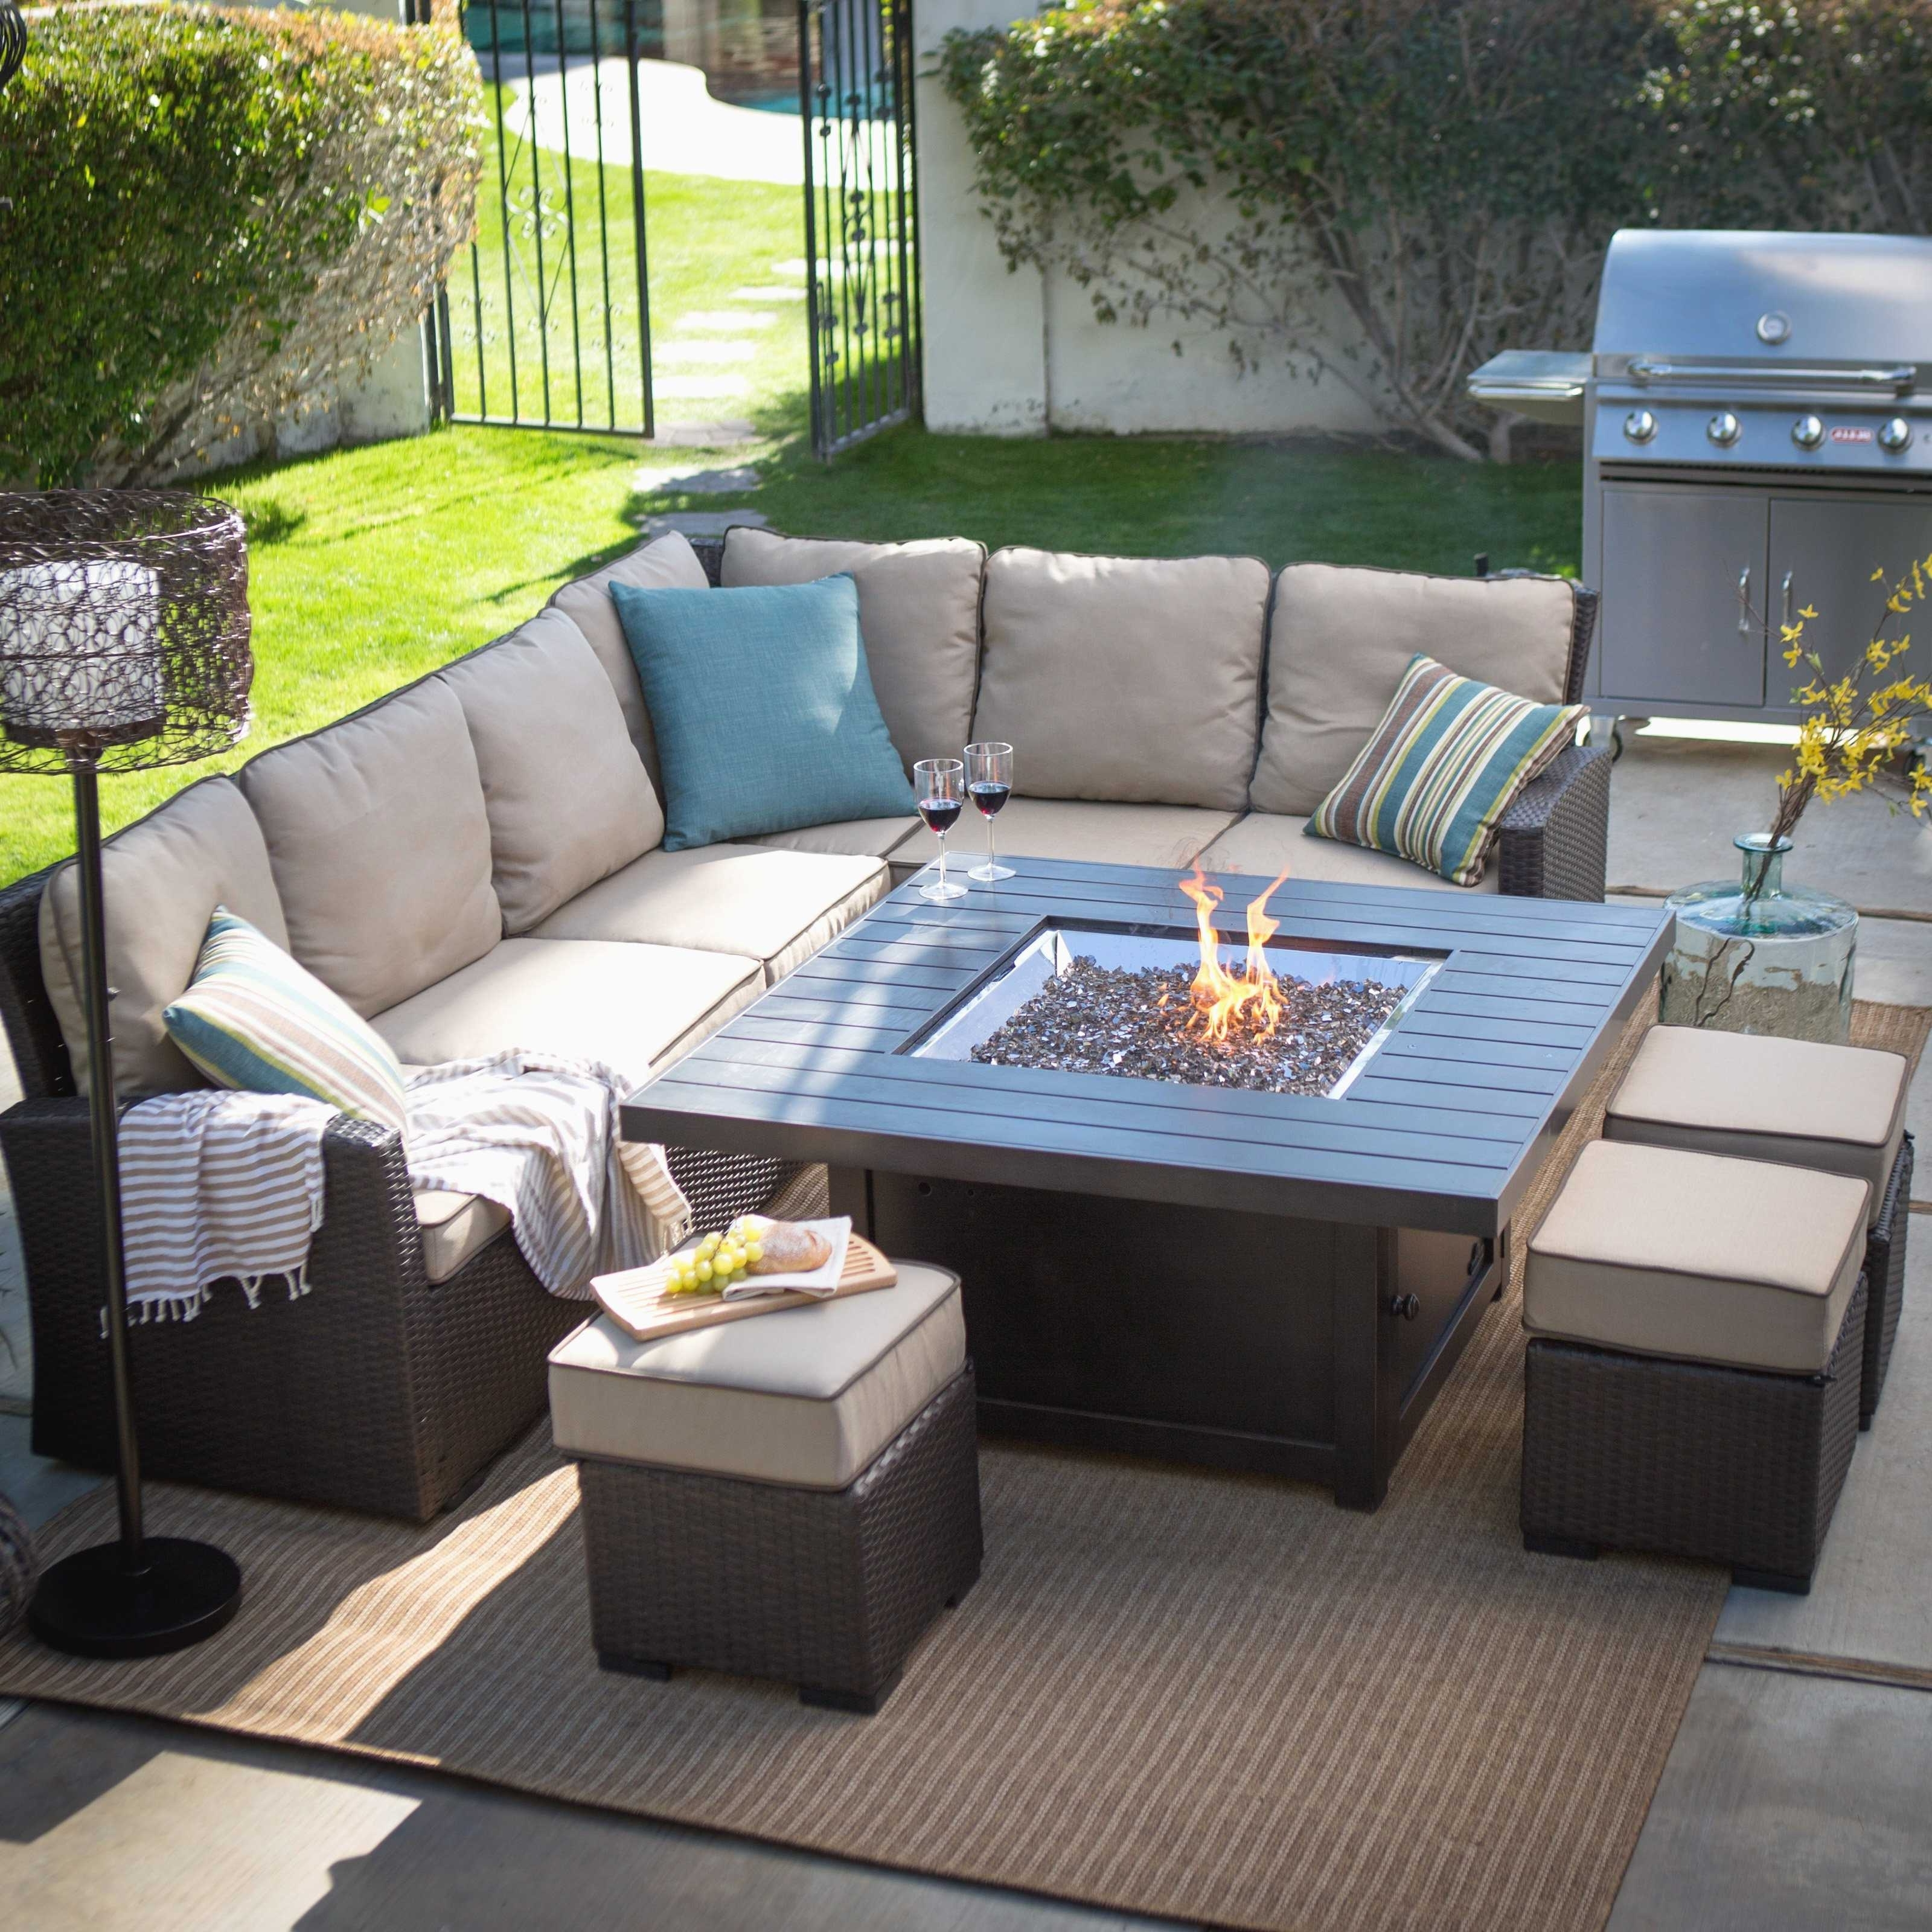 Patio Conversation Sets With Fire Pit Table With Regard To Most Current Patio Conversation Sets With Fire Pit Lovely Belham Living (View 7 of 15)